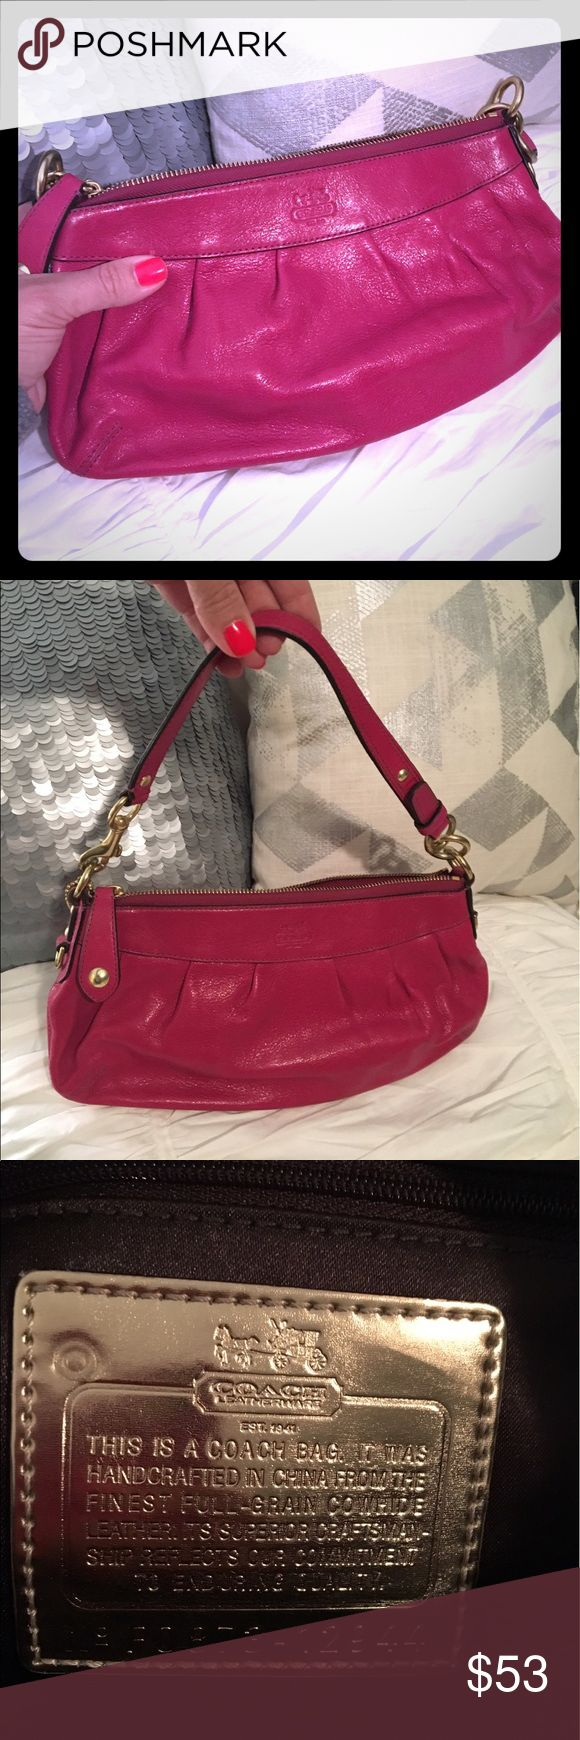 Authentic coach clutch / evening bag Authentic coach. Can be used as a clutch or with the strap as an evening bag. So pretty! Used maybe twice? Nice leather magenta color. Coach tags. Practically new. Coach Bags Clutches & Wristlets